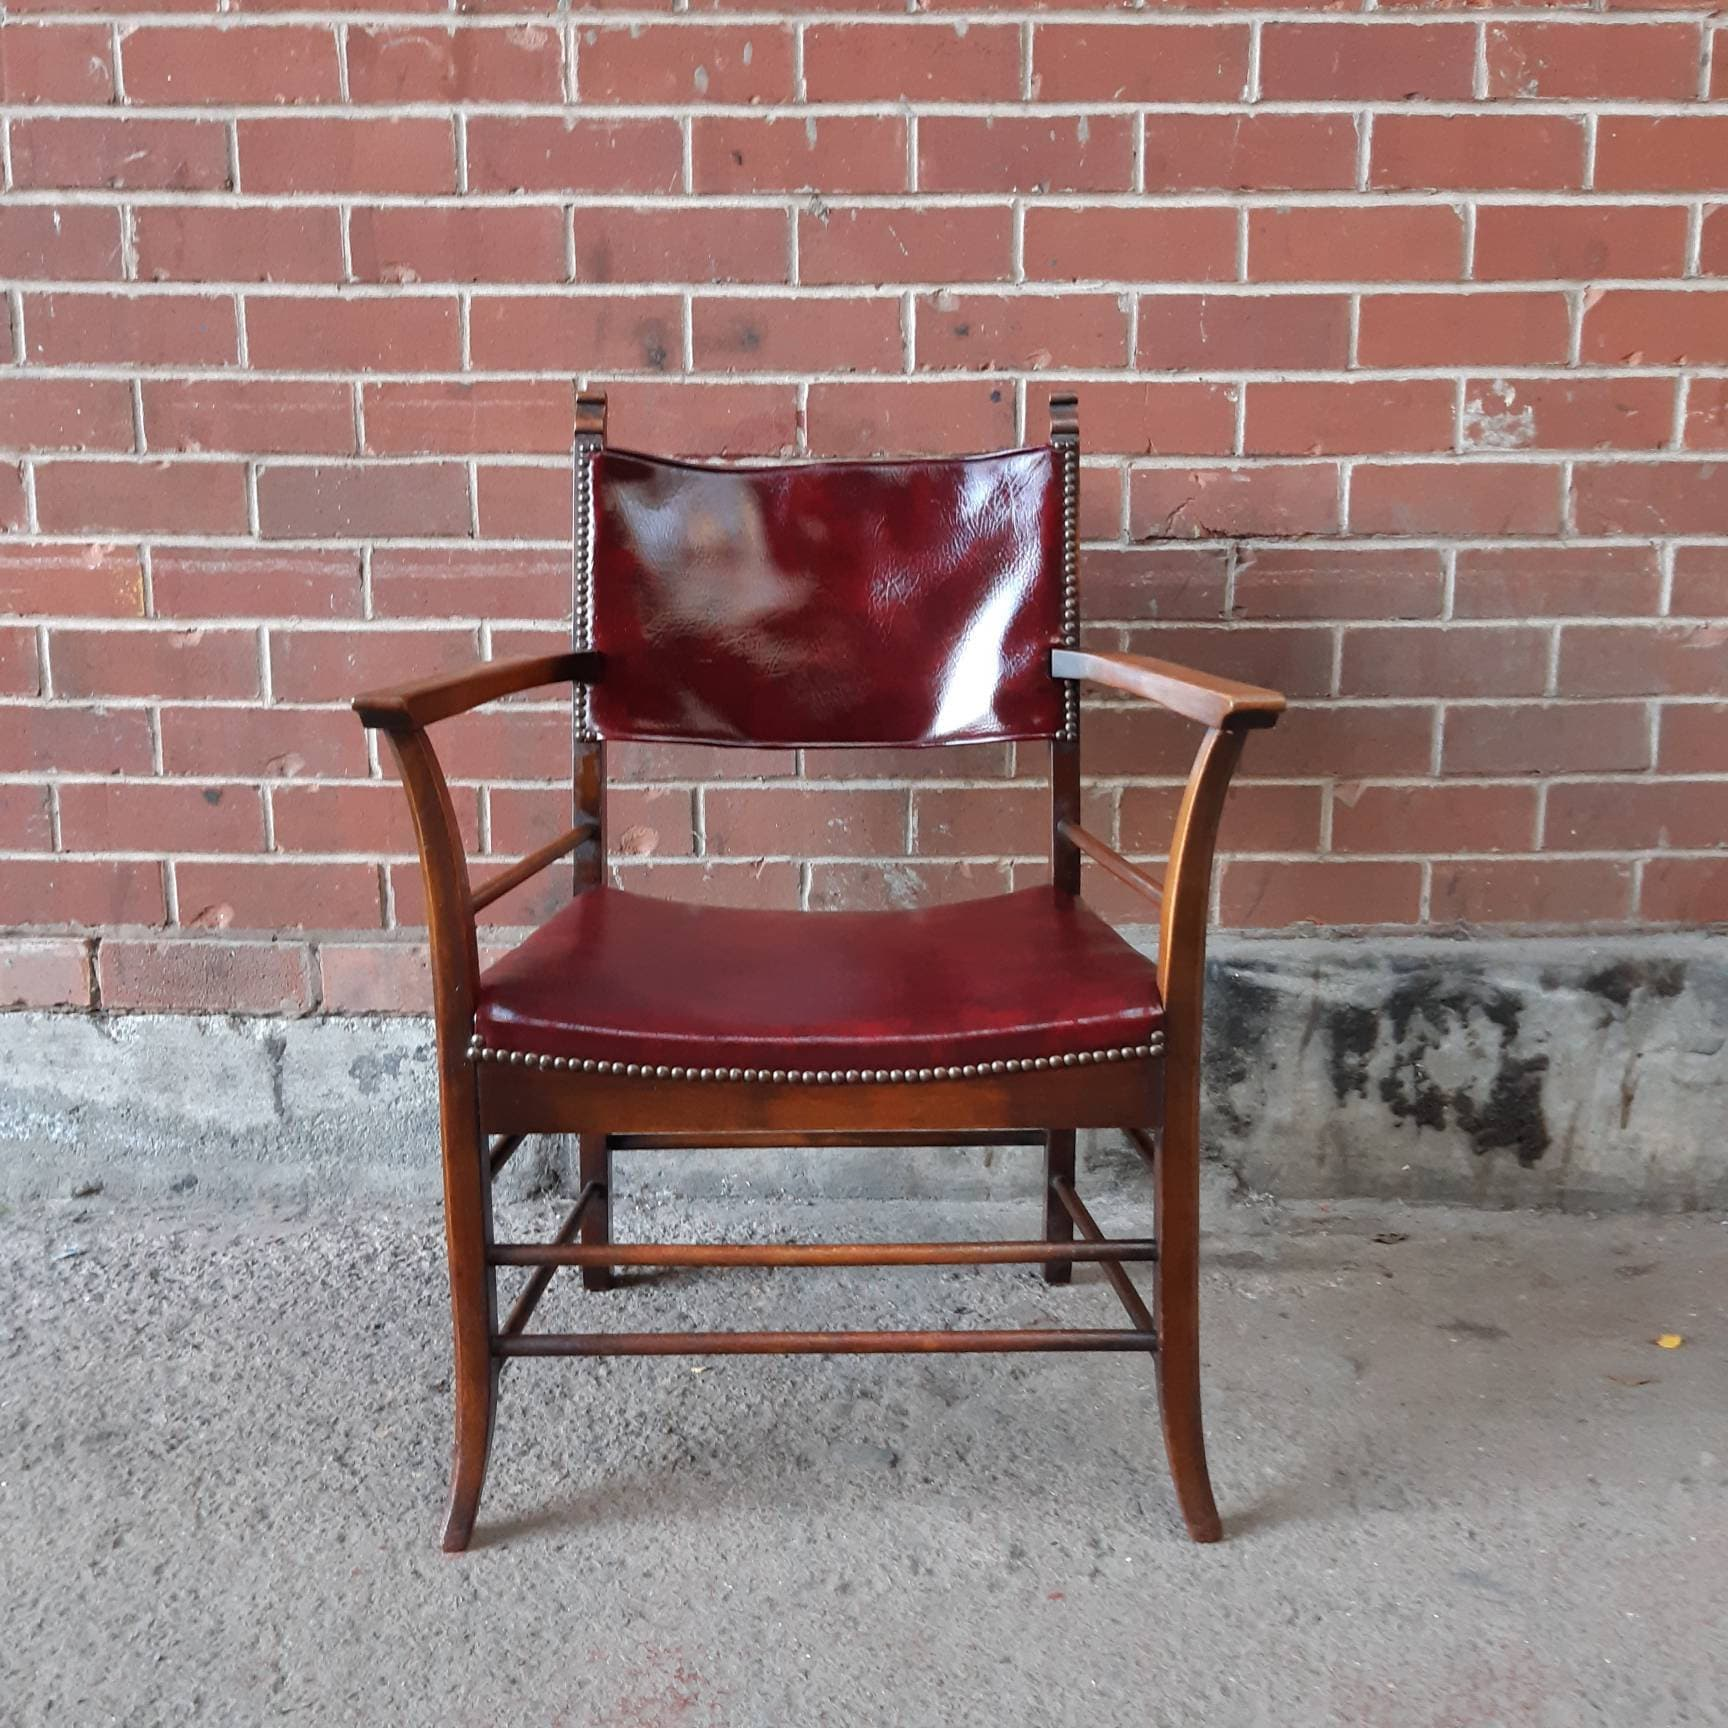 Swell Mid Century Chair Leather Armchair Office Desk Chair Retro Dailytribune Chair Design For Home Dailytribuneorg